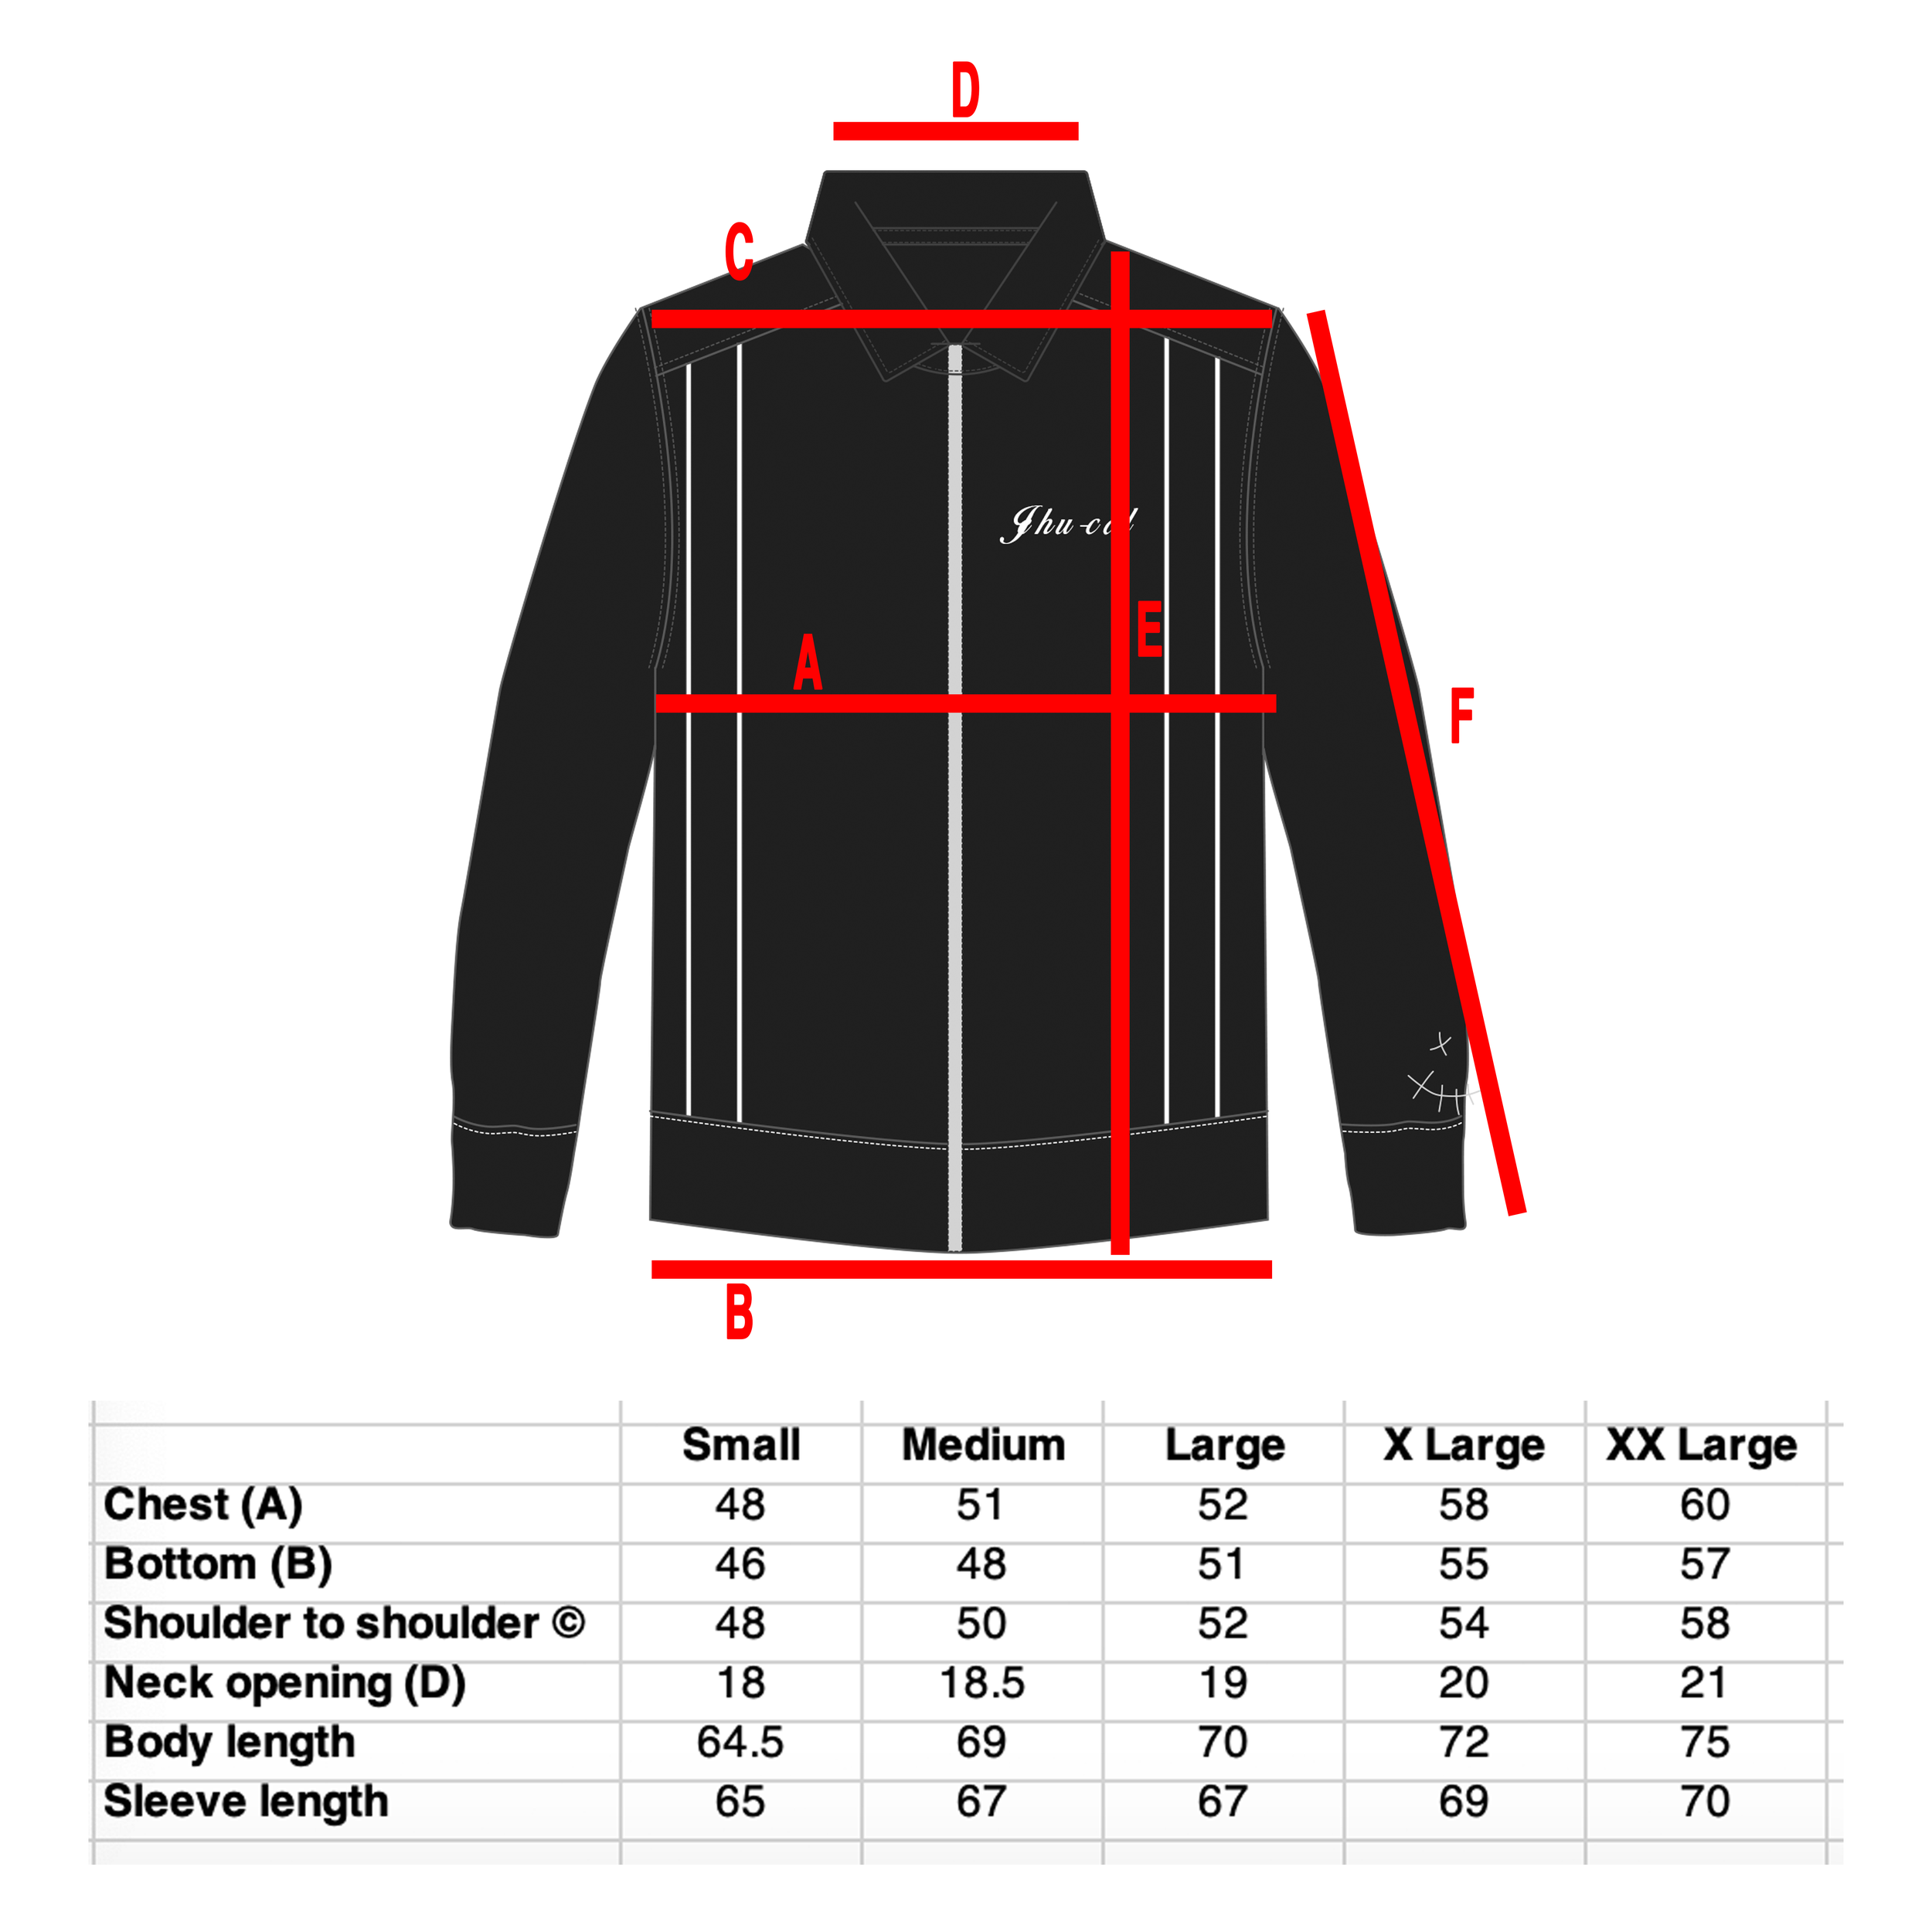 Jacket measurements.png